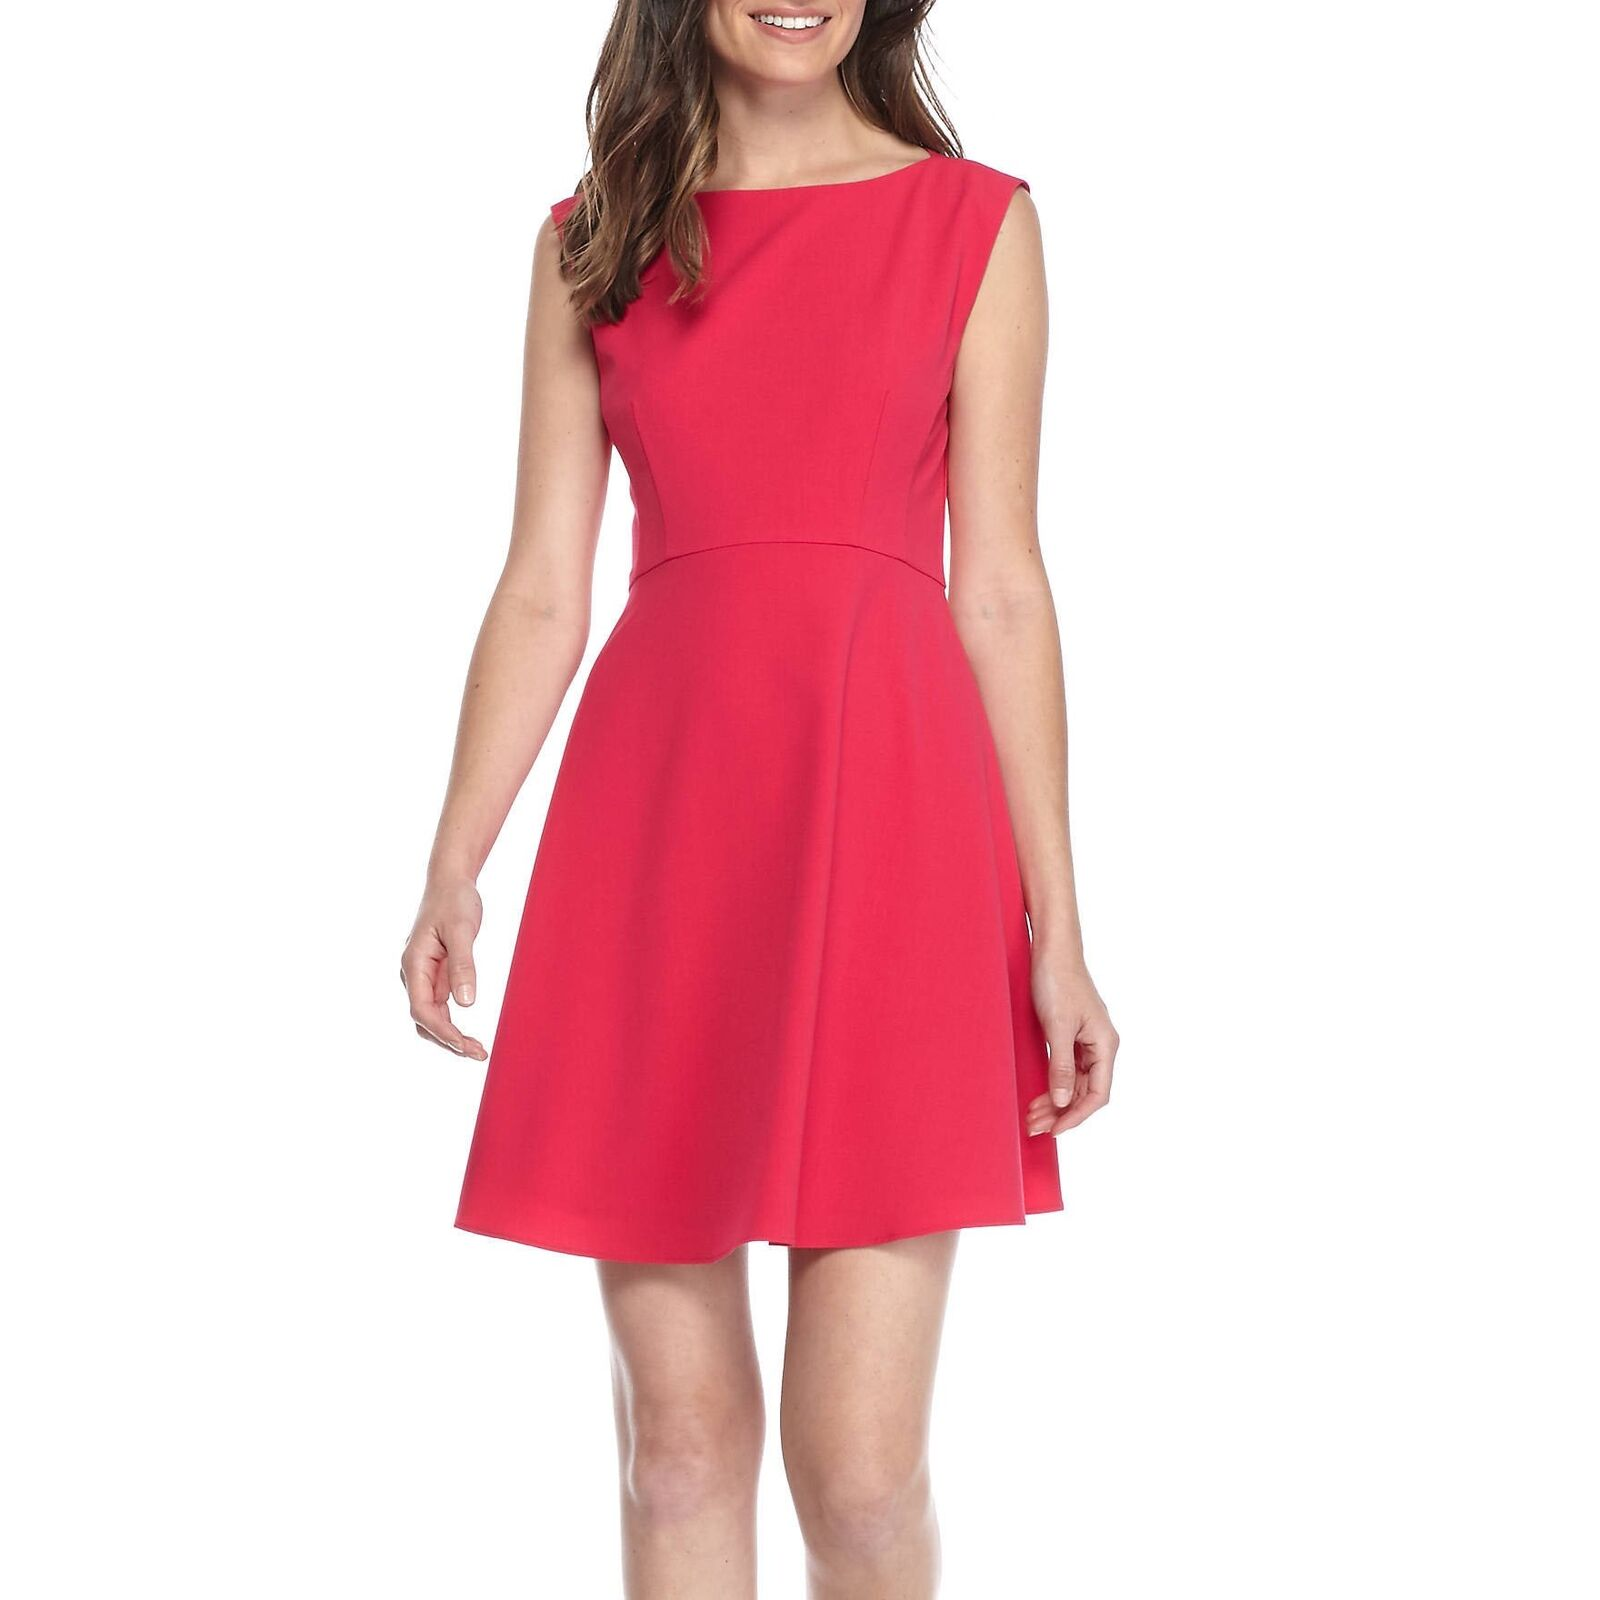 749e5a2b NEW French Connection Whisper Ruth Dress Size 6 color- Pink ...